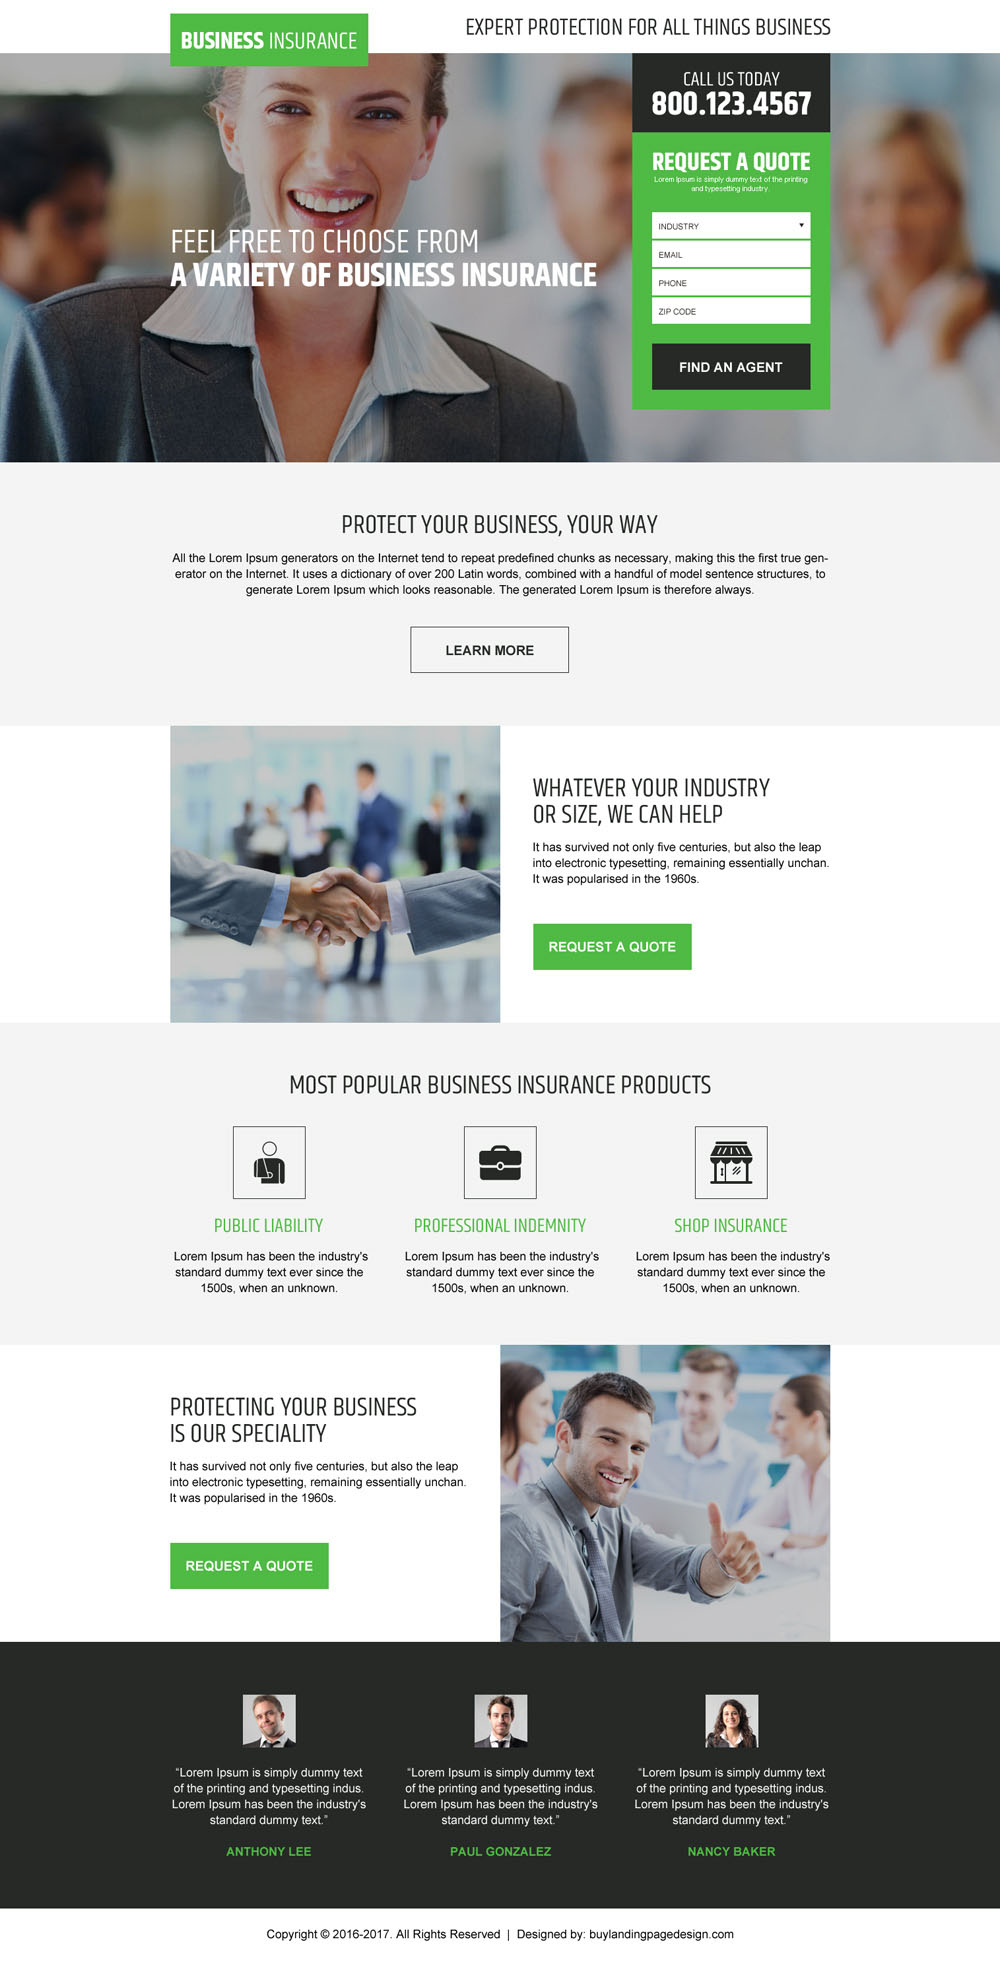 Business Insurance Landing Pages For Capturing High Quality Leads Business Insurance Small Business Insurance Landing Page Design